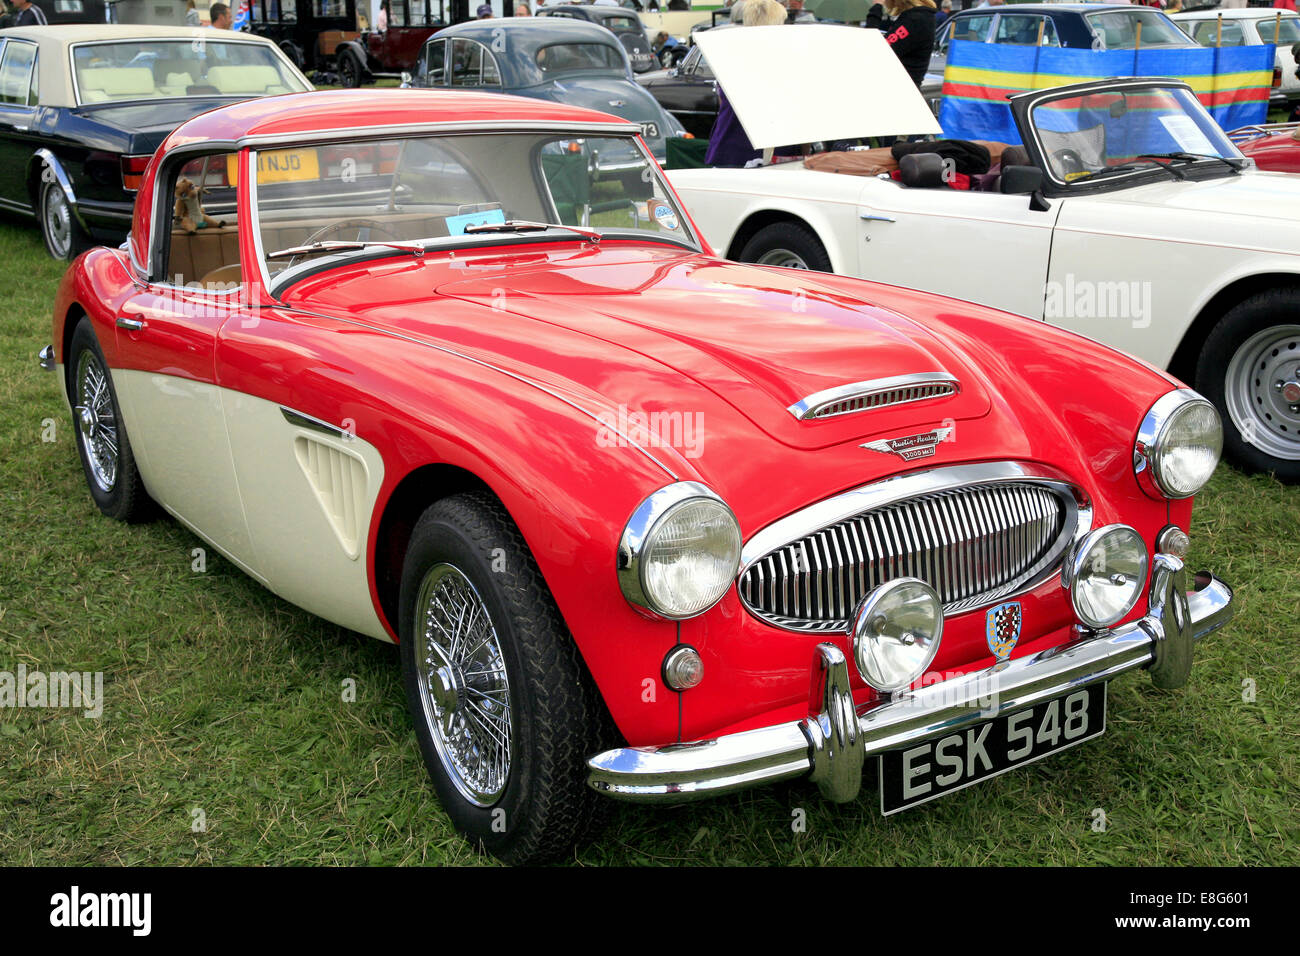 A Classic Vintage 1962 Austin Healey 3000 Sports Car On Display At The Cromford Steam Rally